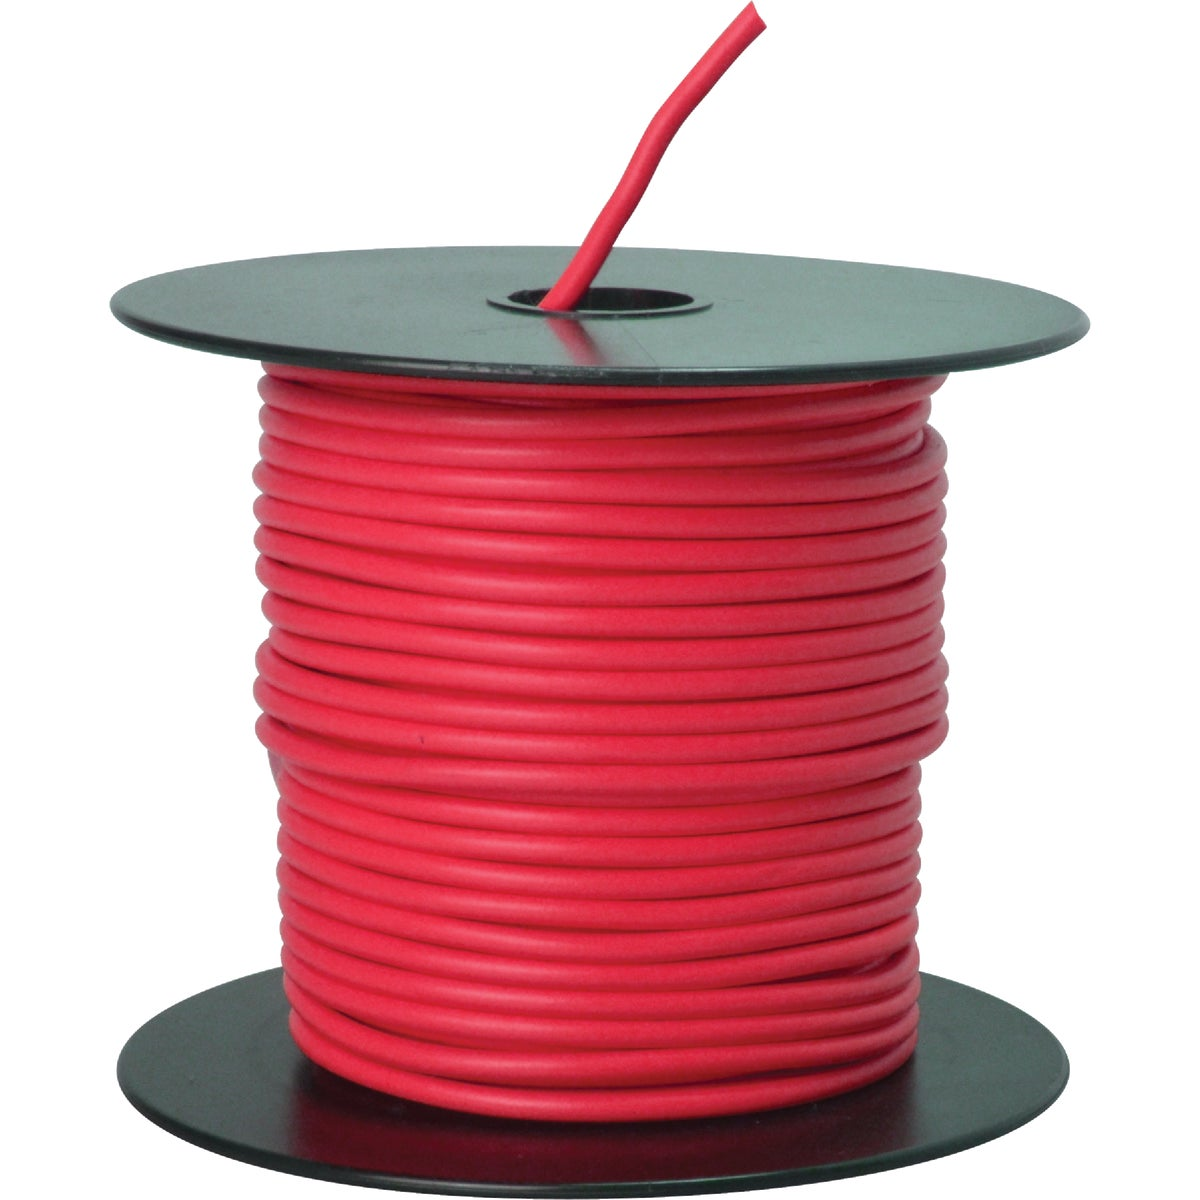 100' 14GA RED AUTO WIRE - 14-100-16 by Woods Wire Coleman